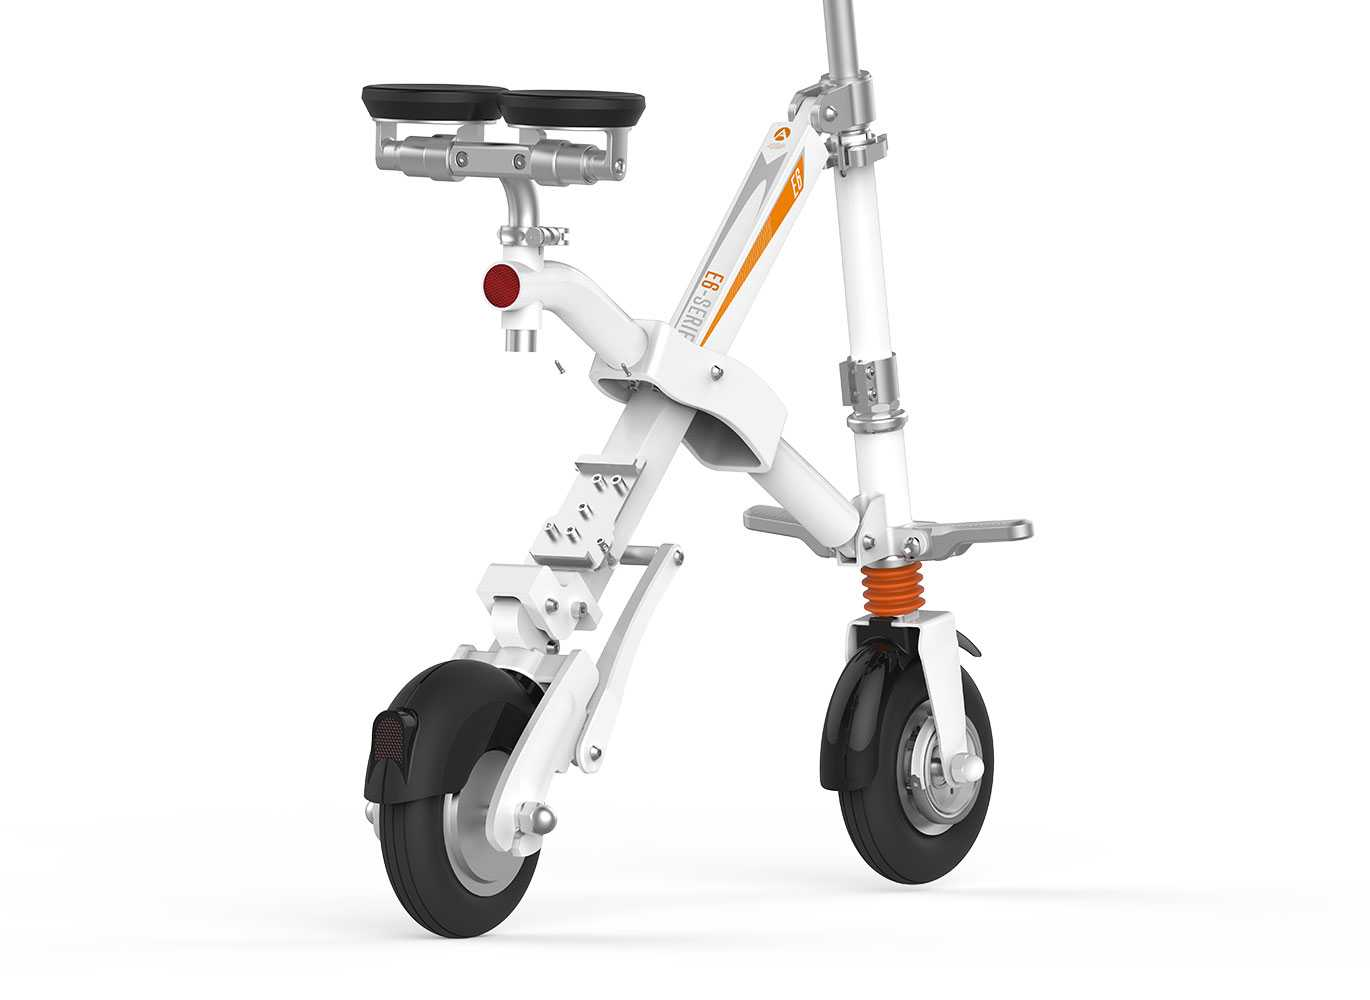 airwheel-e6-1